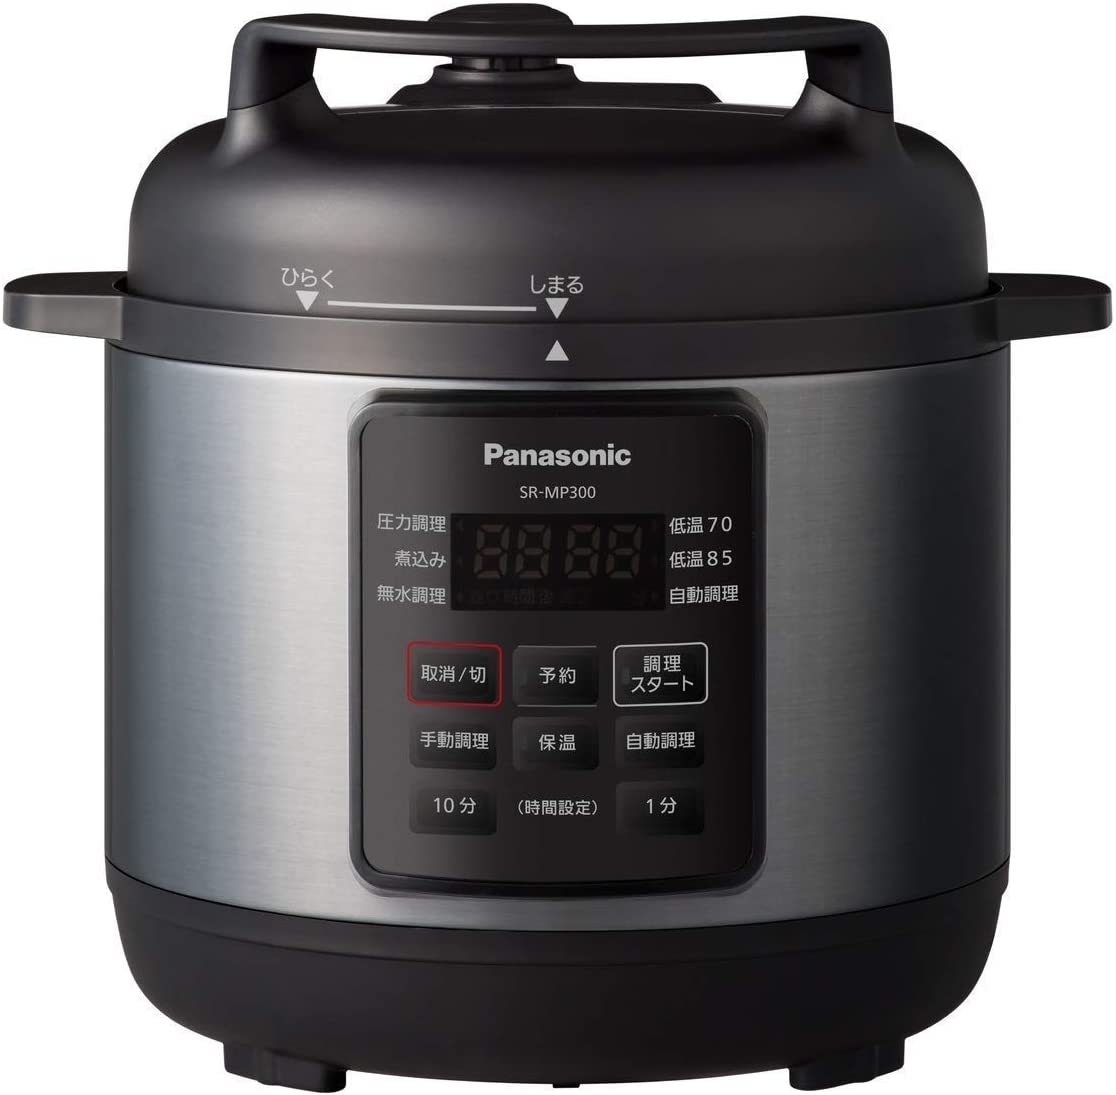 Panasonic Electric Pressure Cooker (3.0L) SR-MP300-K (BLACK)【Japan Domestic Genuine Products】【Ships from Japan】